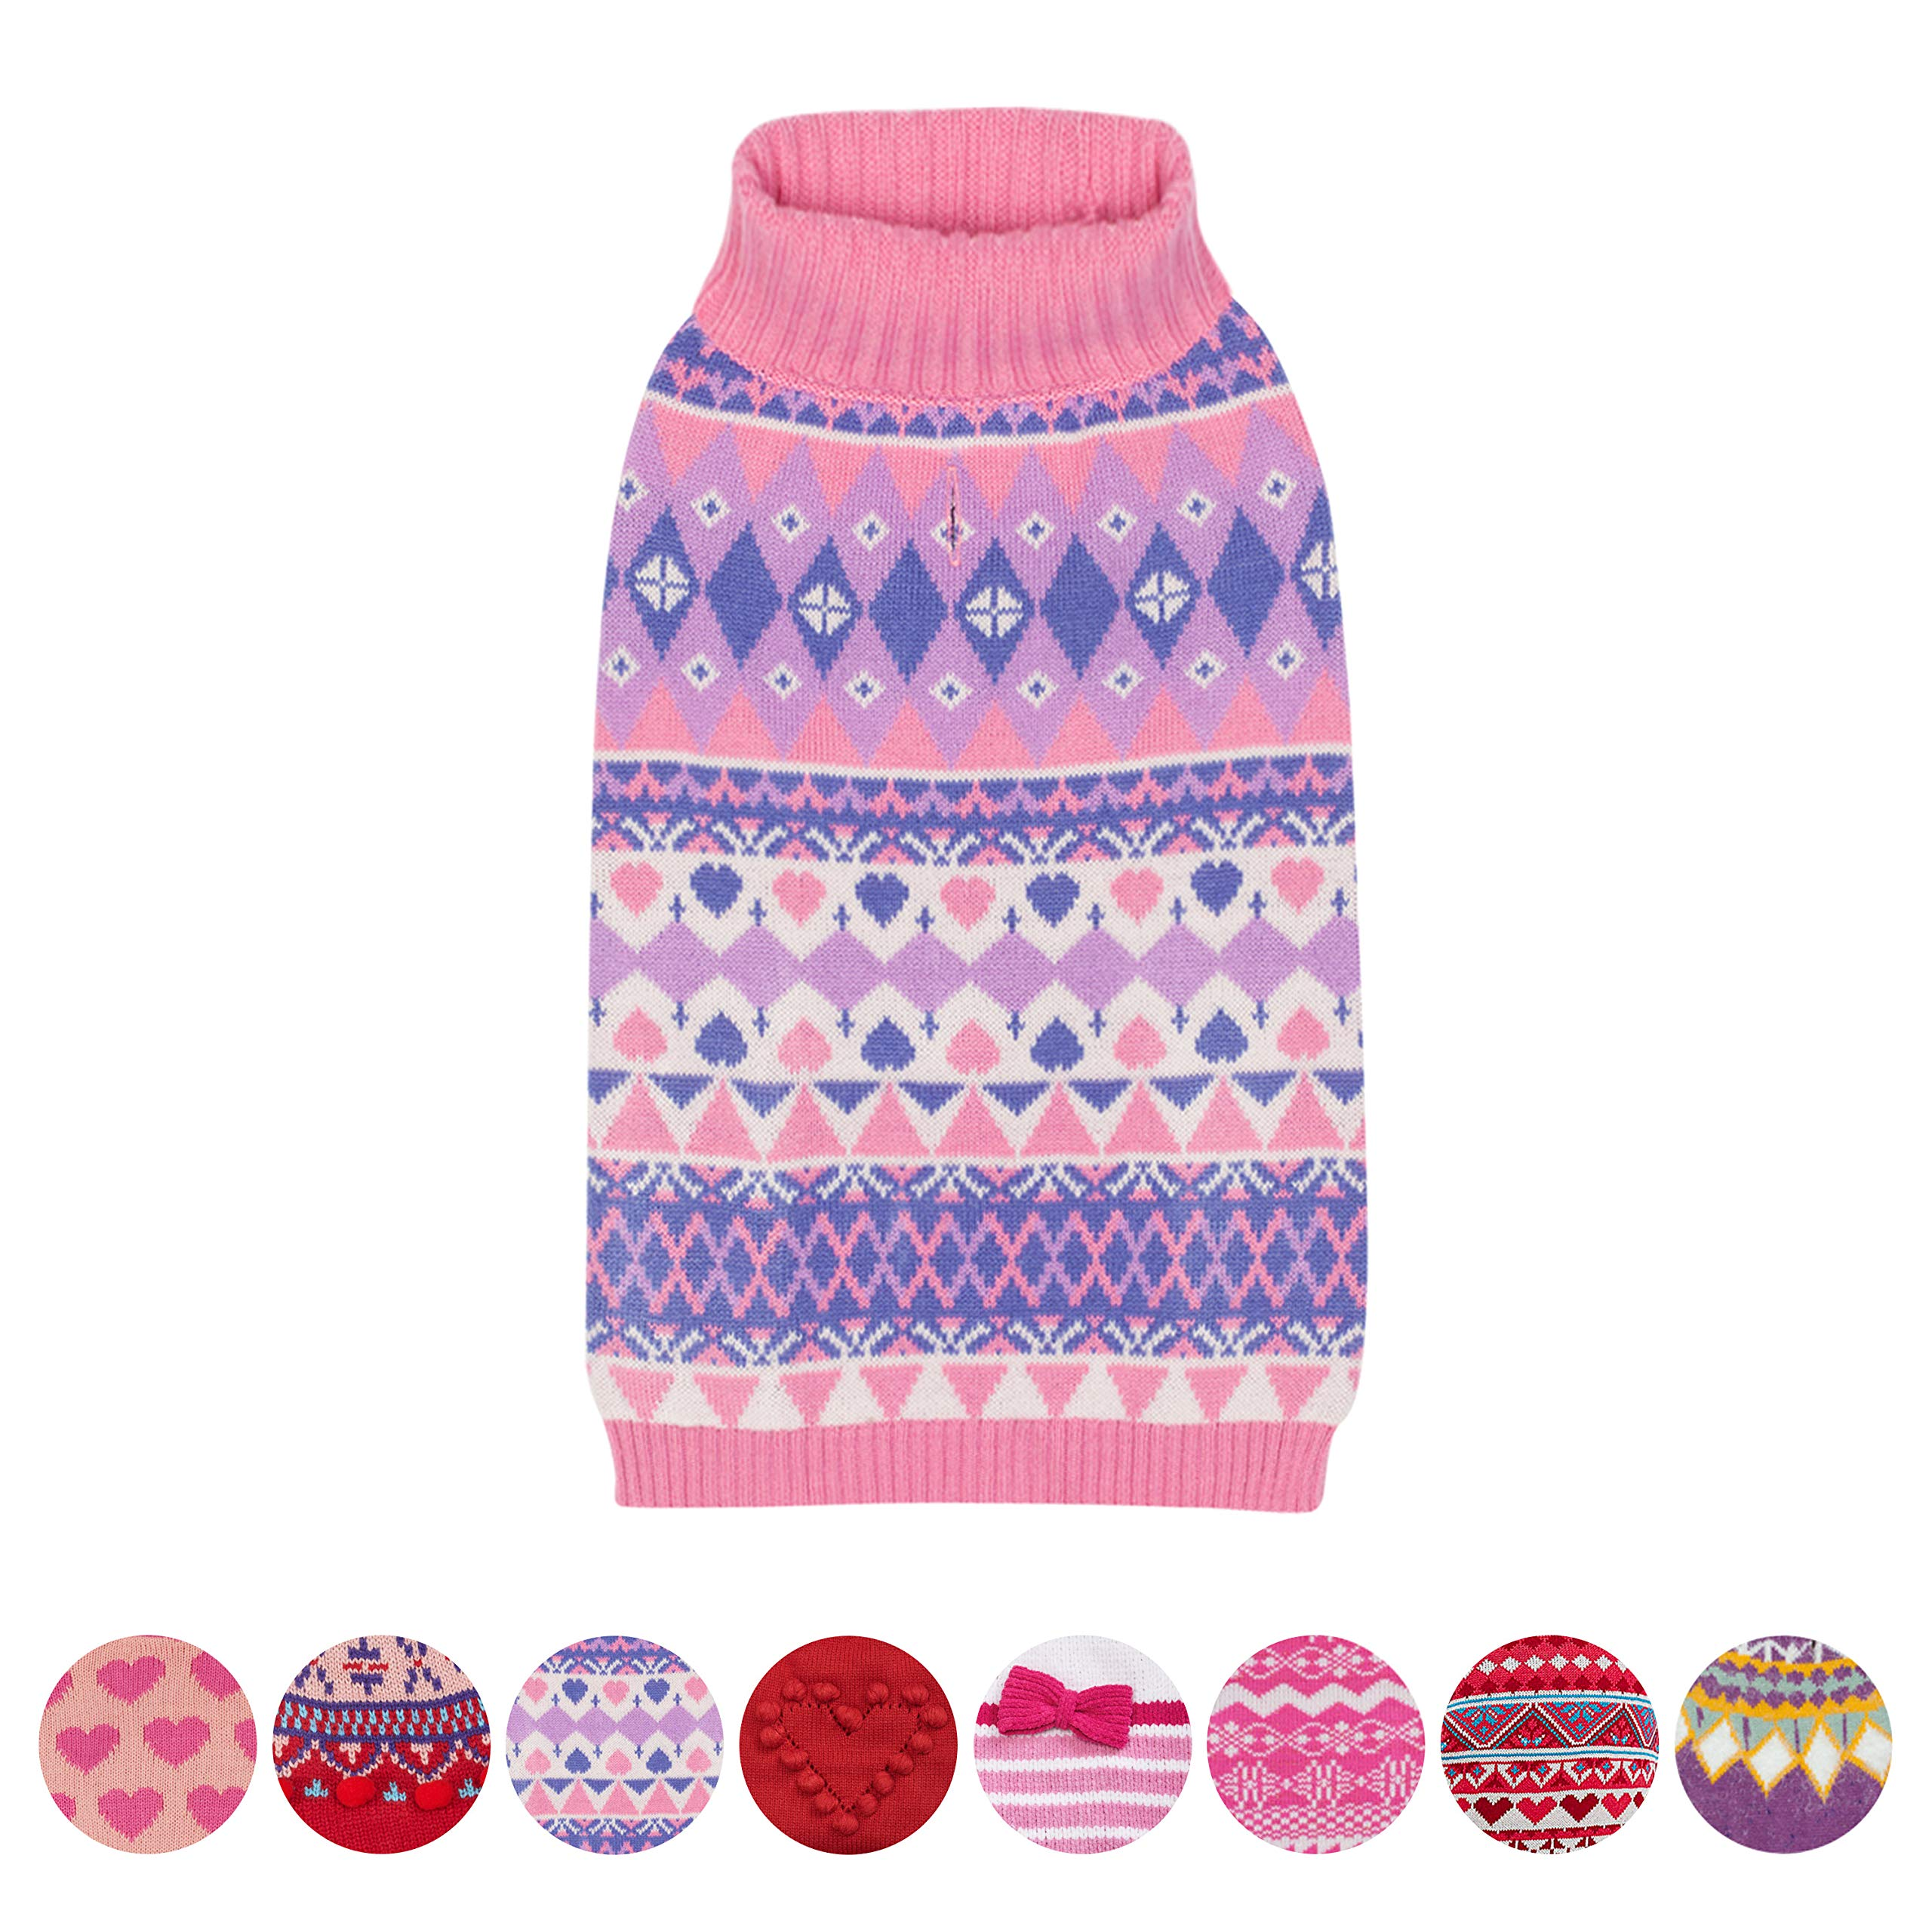 Blueberry Pet 8 Patterns Vivid Tone Sweet Winter Bloom Designer Pullover Dog Sweater with Valentine Heart in Carnation Pink and Sheer Lilac, Back Length 12'', Pack of 1 Clothes for Dogs